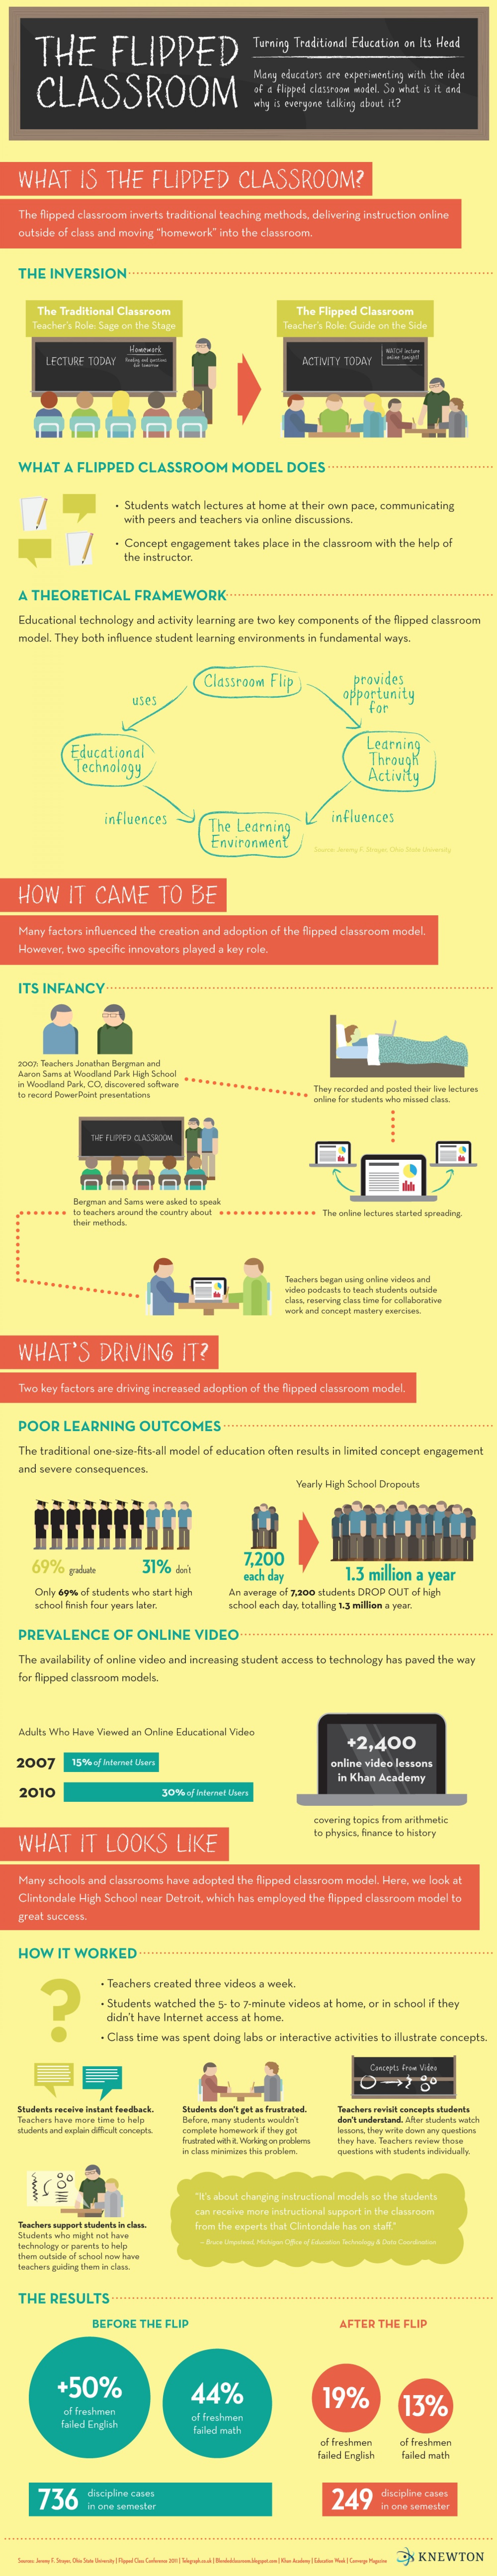 The Flipped Classroom Infographic